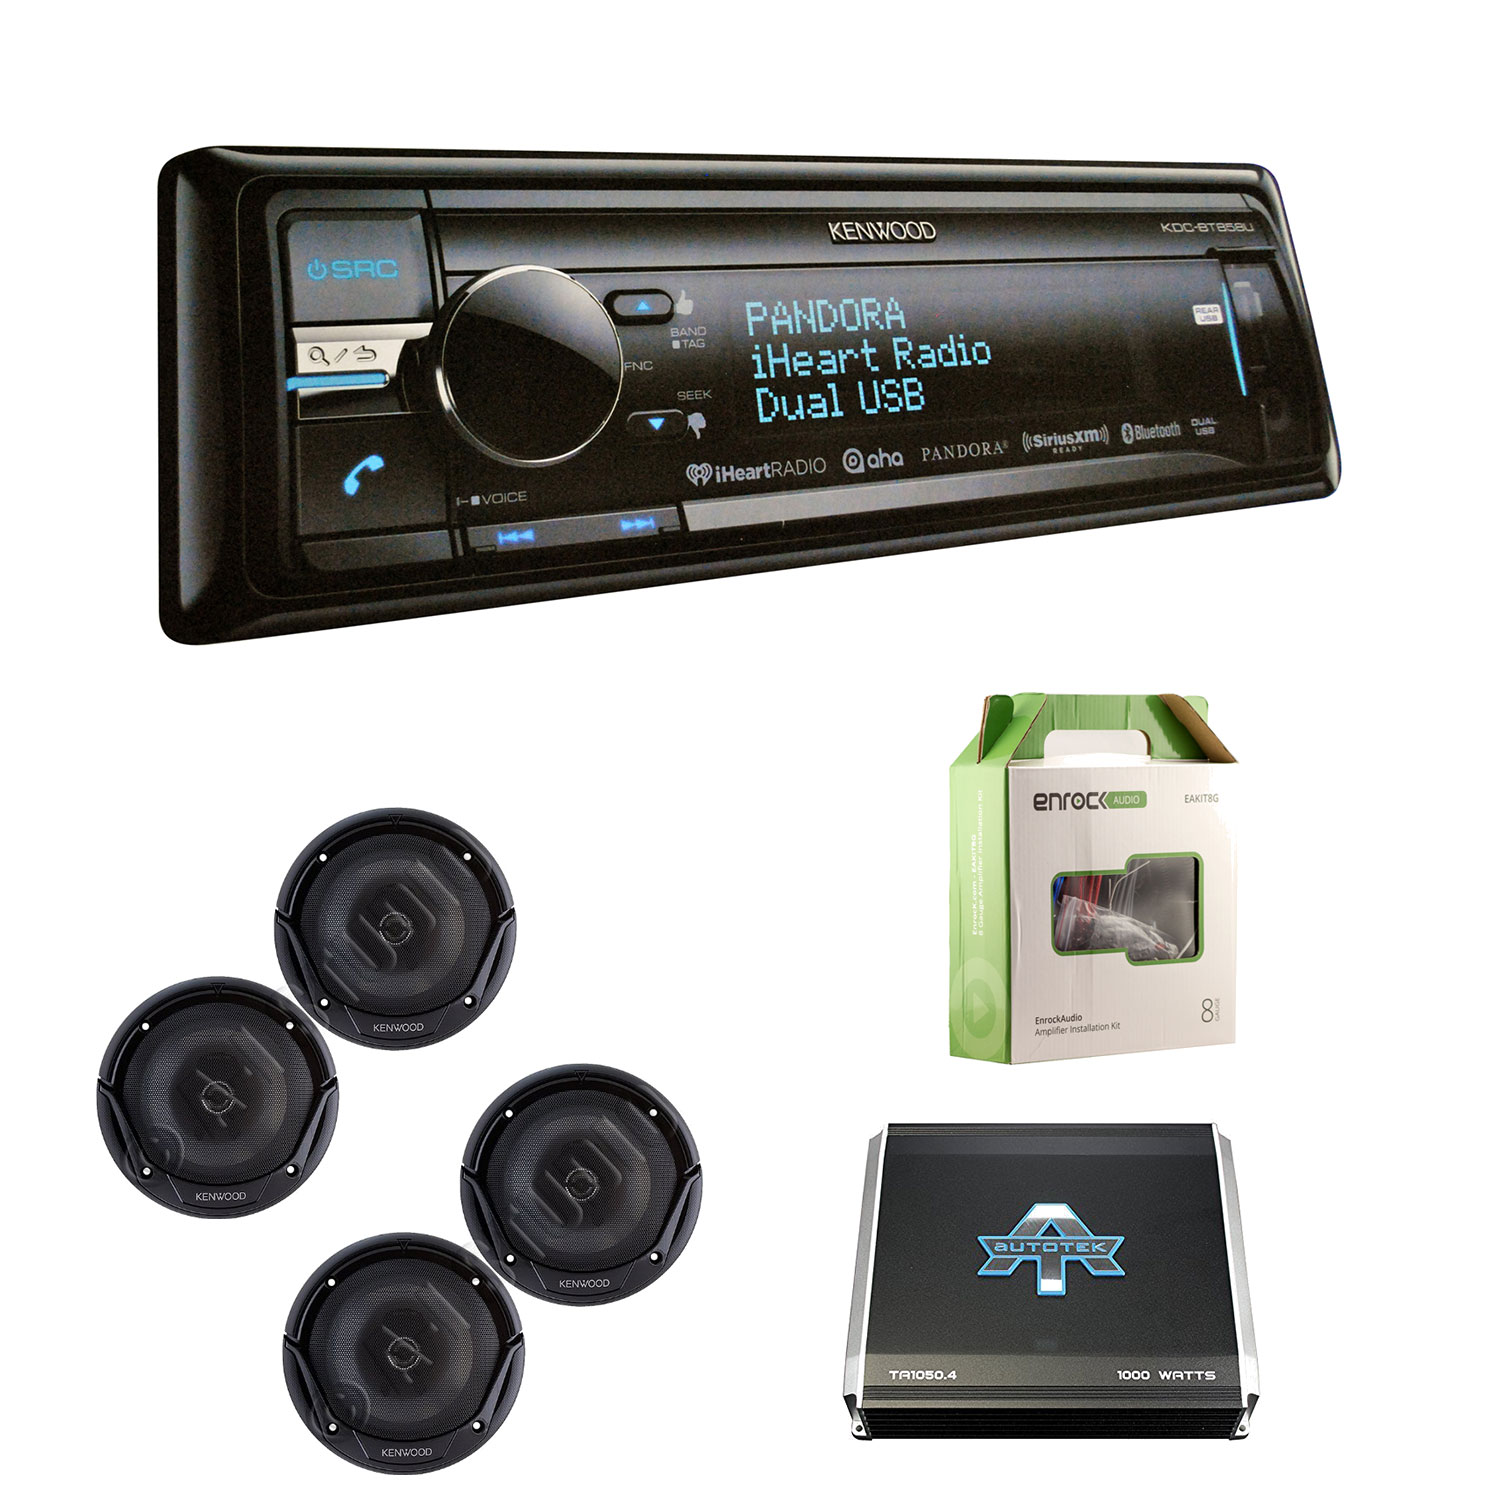 "Kenwood KDCBT858U CD Player Bluetooth USB SiriusXM Receiver With Kenwood KFC1665S 6.5"" 2-Way Car Speakers (2 Pairs), Autotek TA10504 1000W, 4 Chan Amp & Enrock EAKIT8G 18 Gauge 50 Feet Speaker Wire"